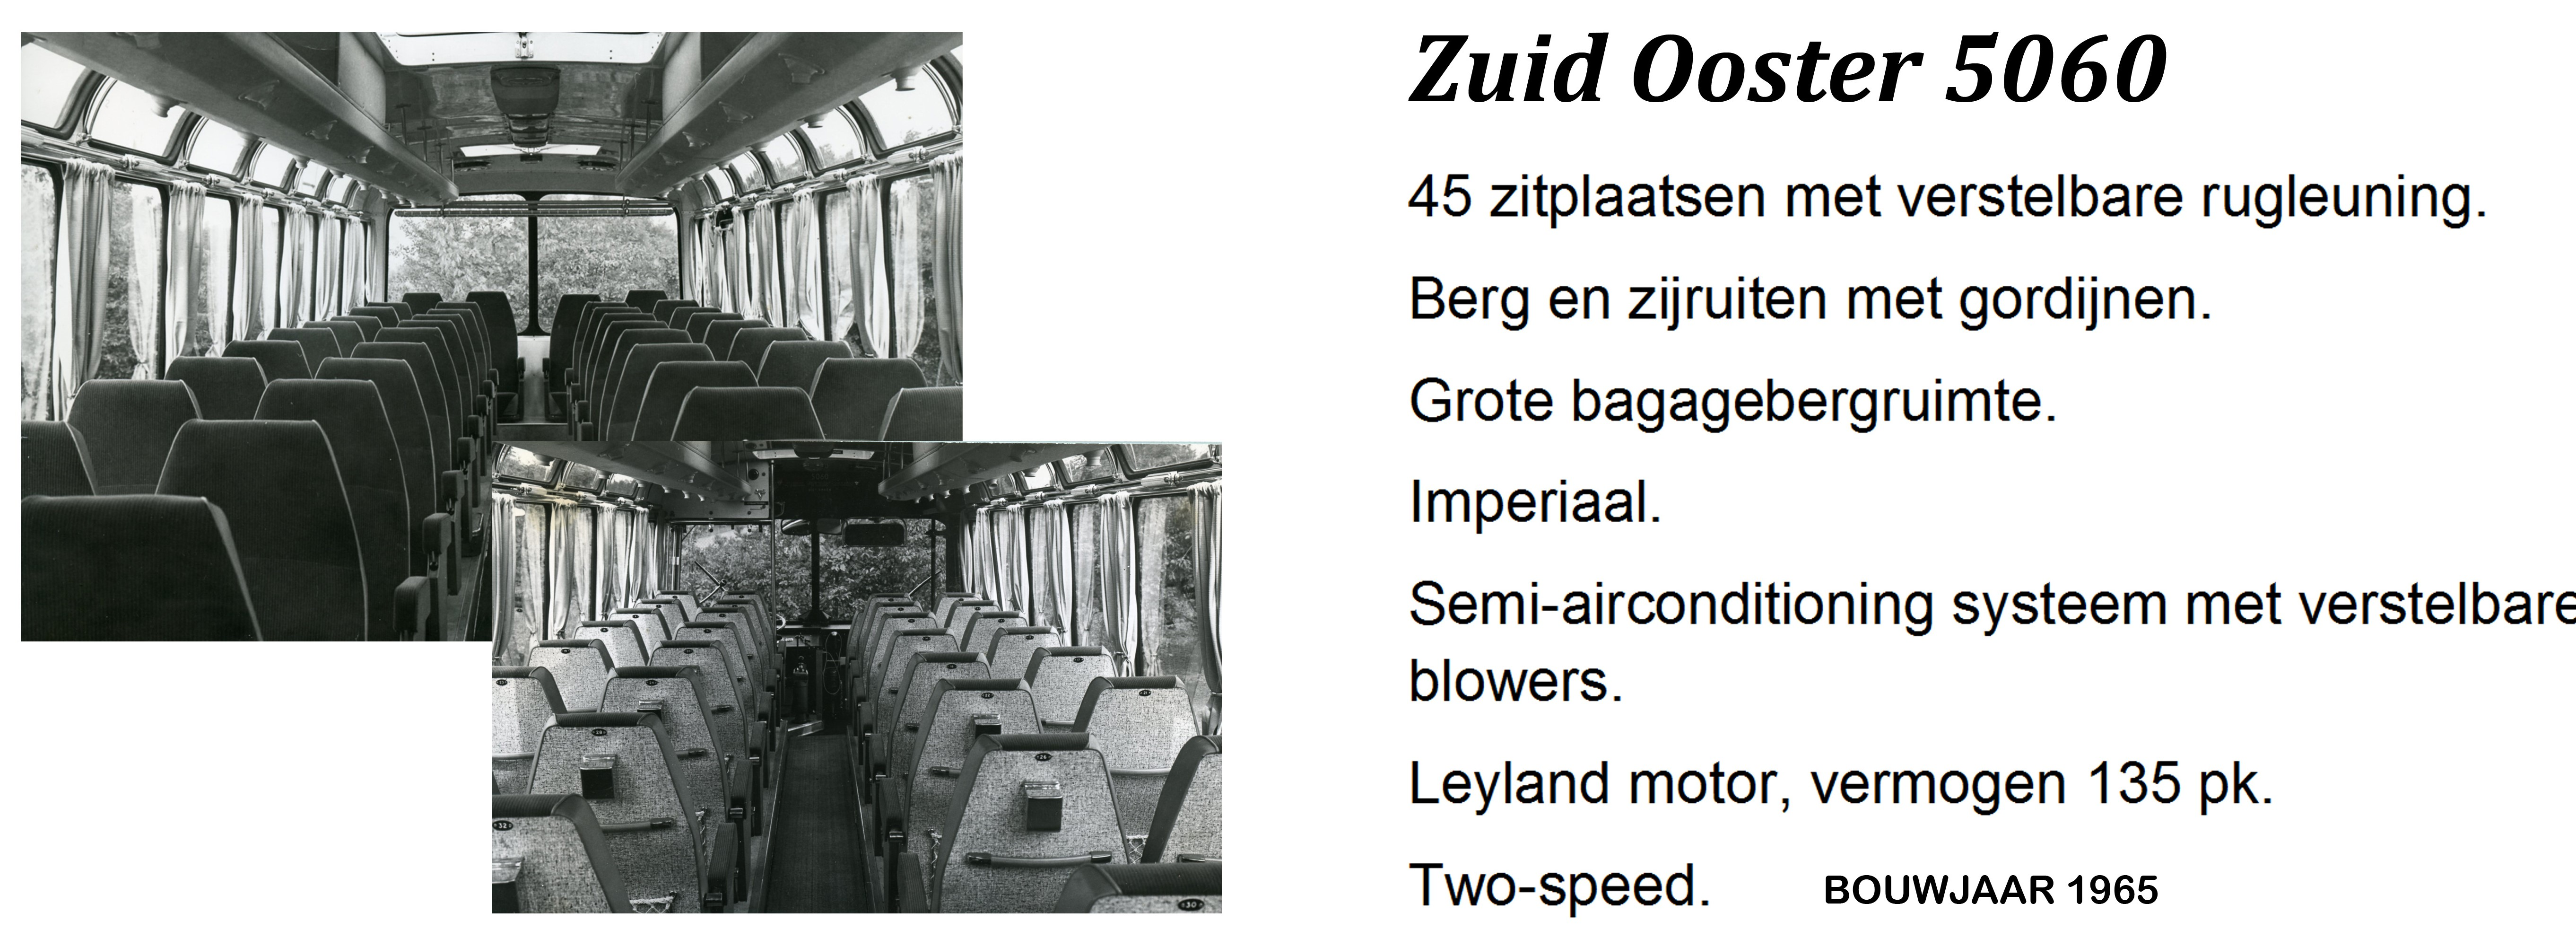 5060-Zuid-Ooster-2